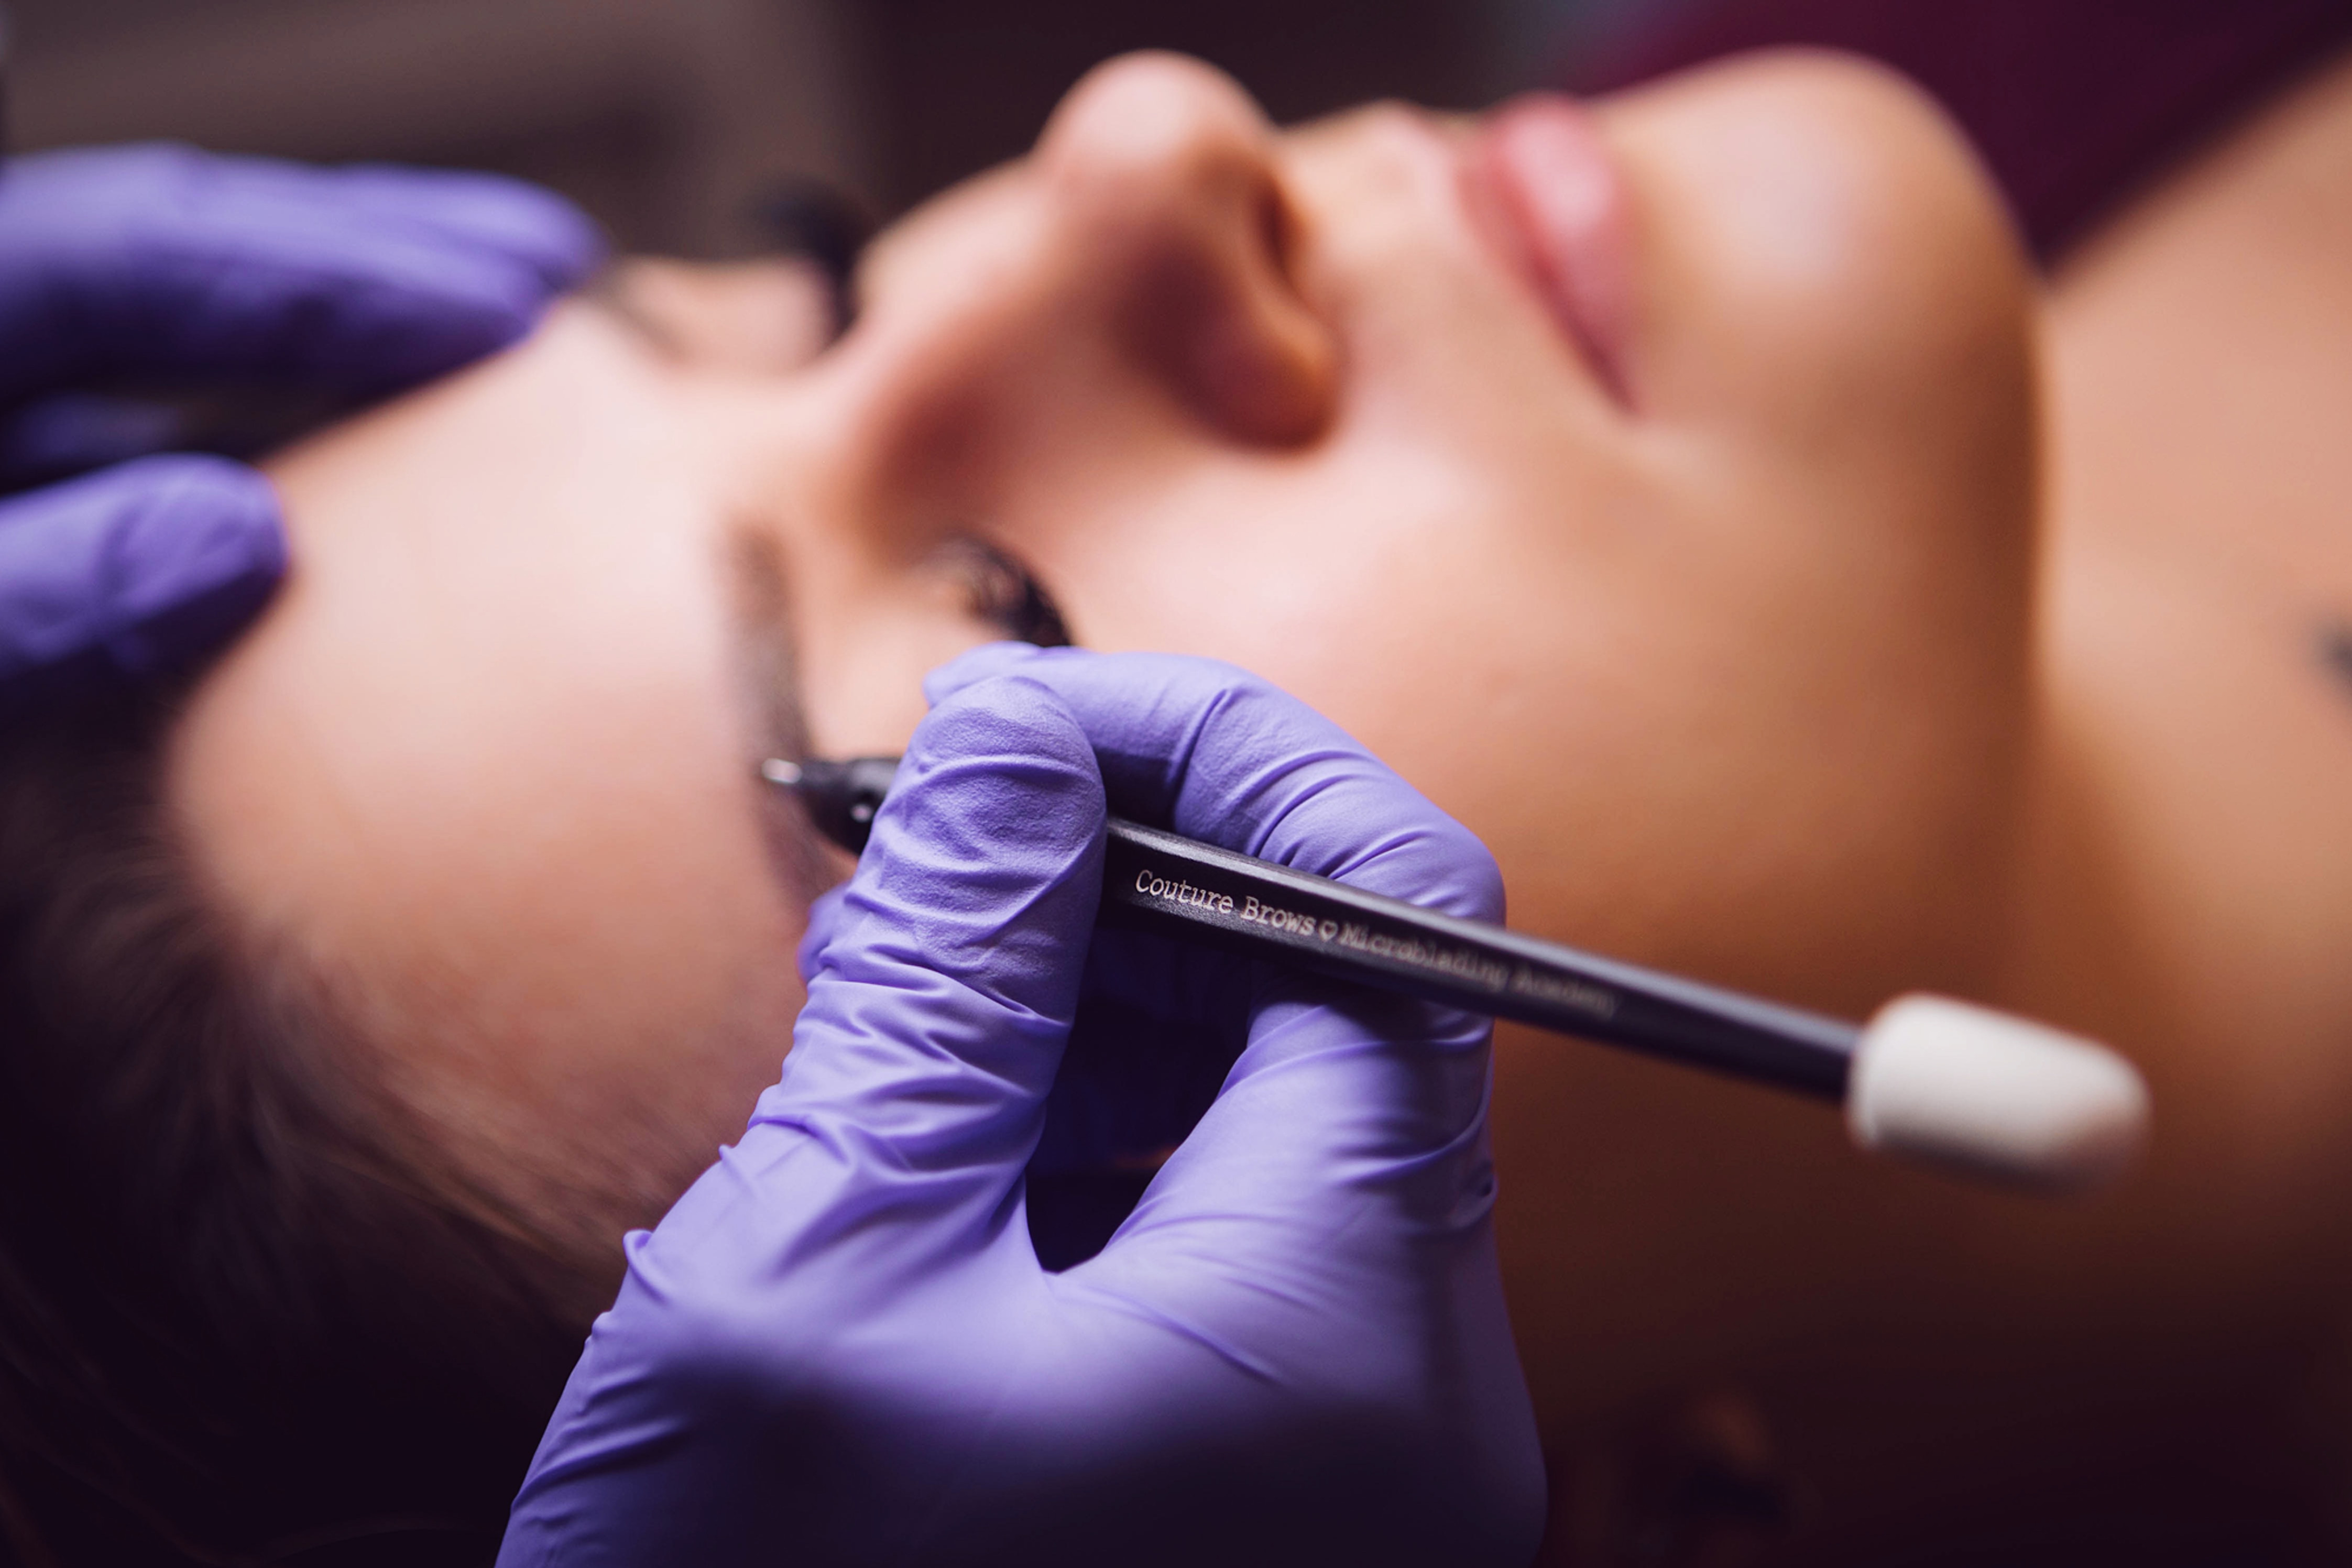 Aug. 5-Day Microblading Course Only